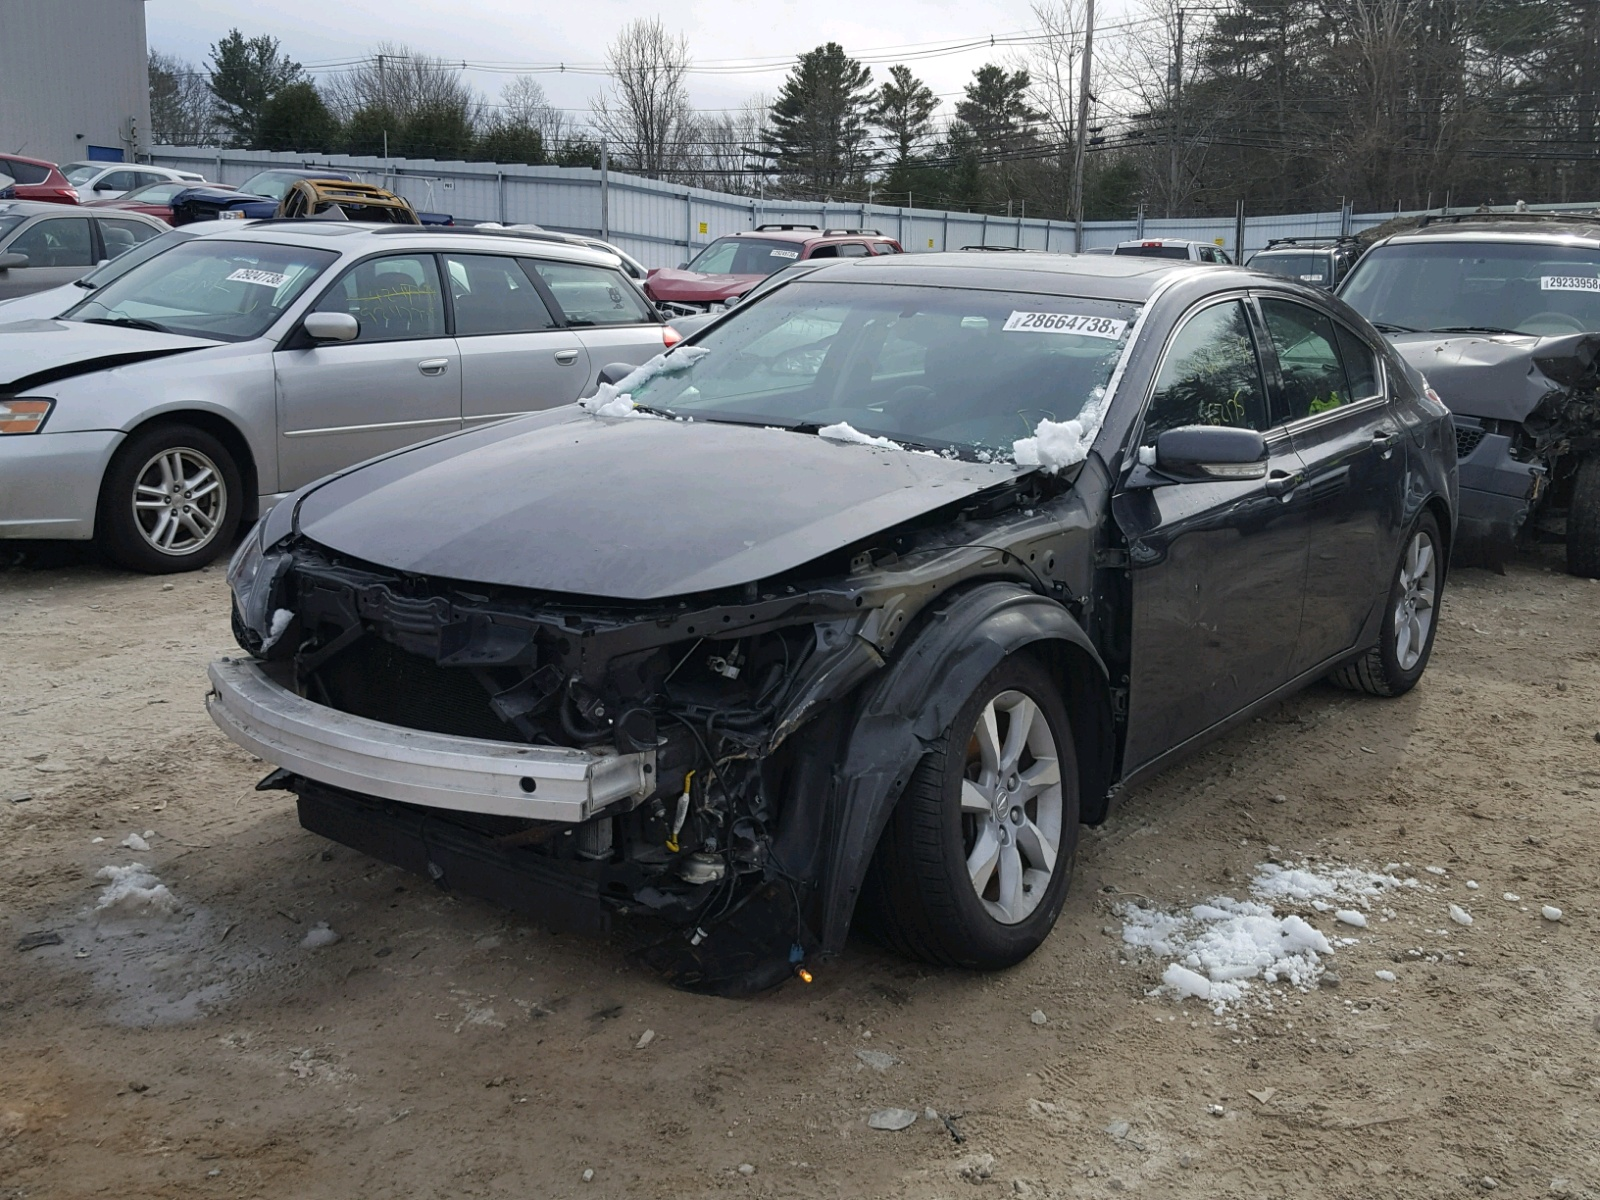 auctions tl lot salvage on acura cert of online gray left ma sale title auto en in for view boston copart carfinder south